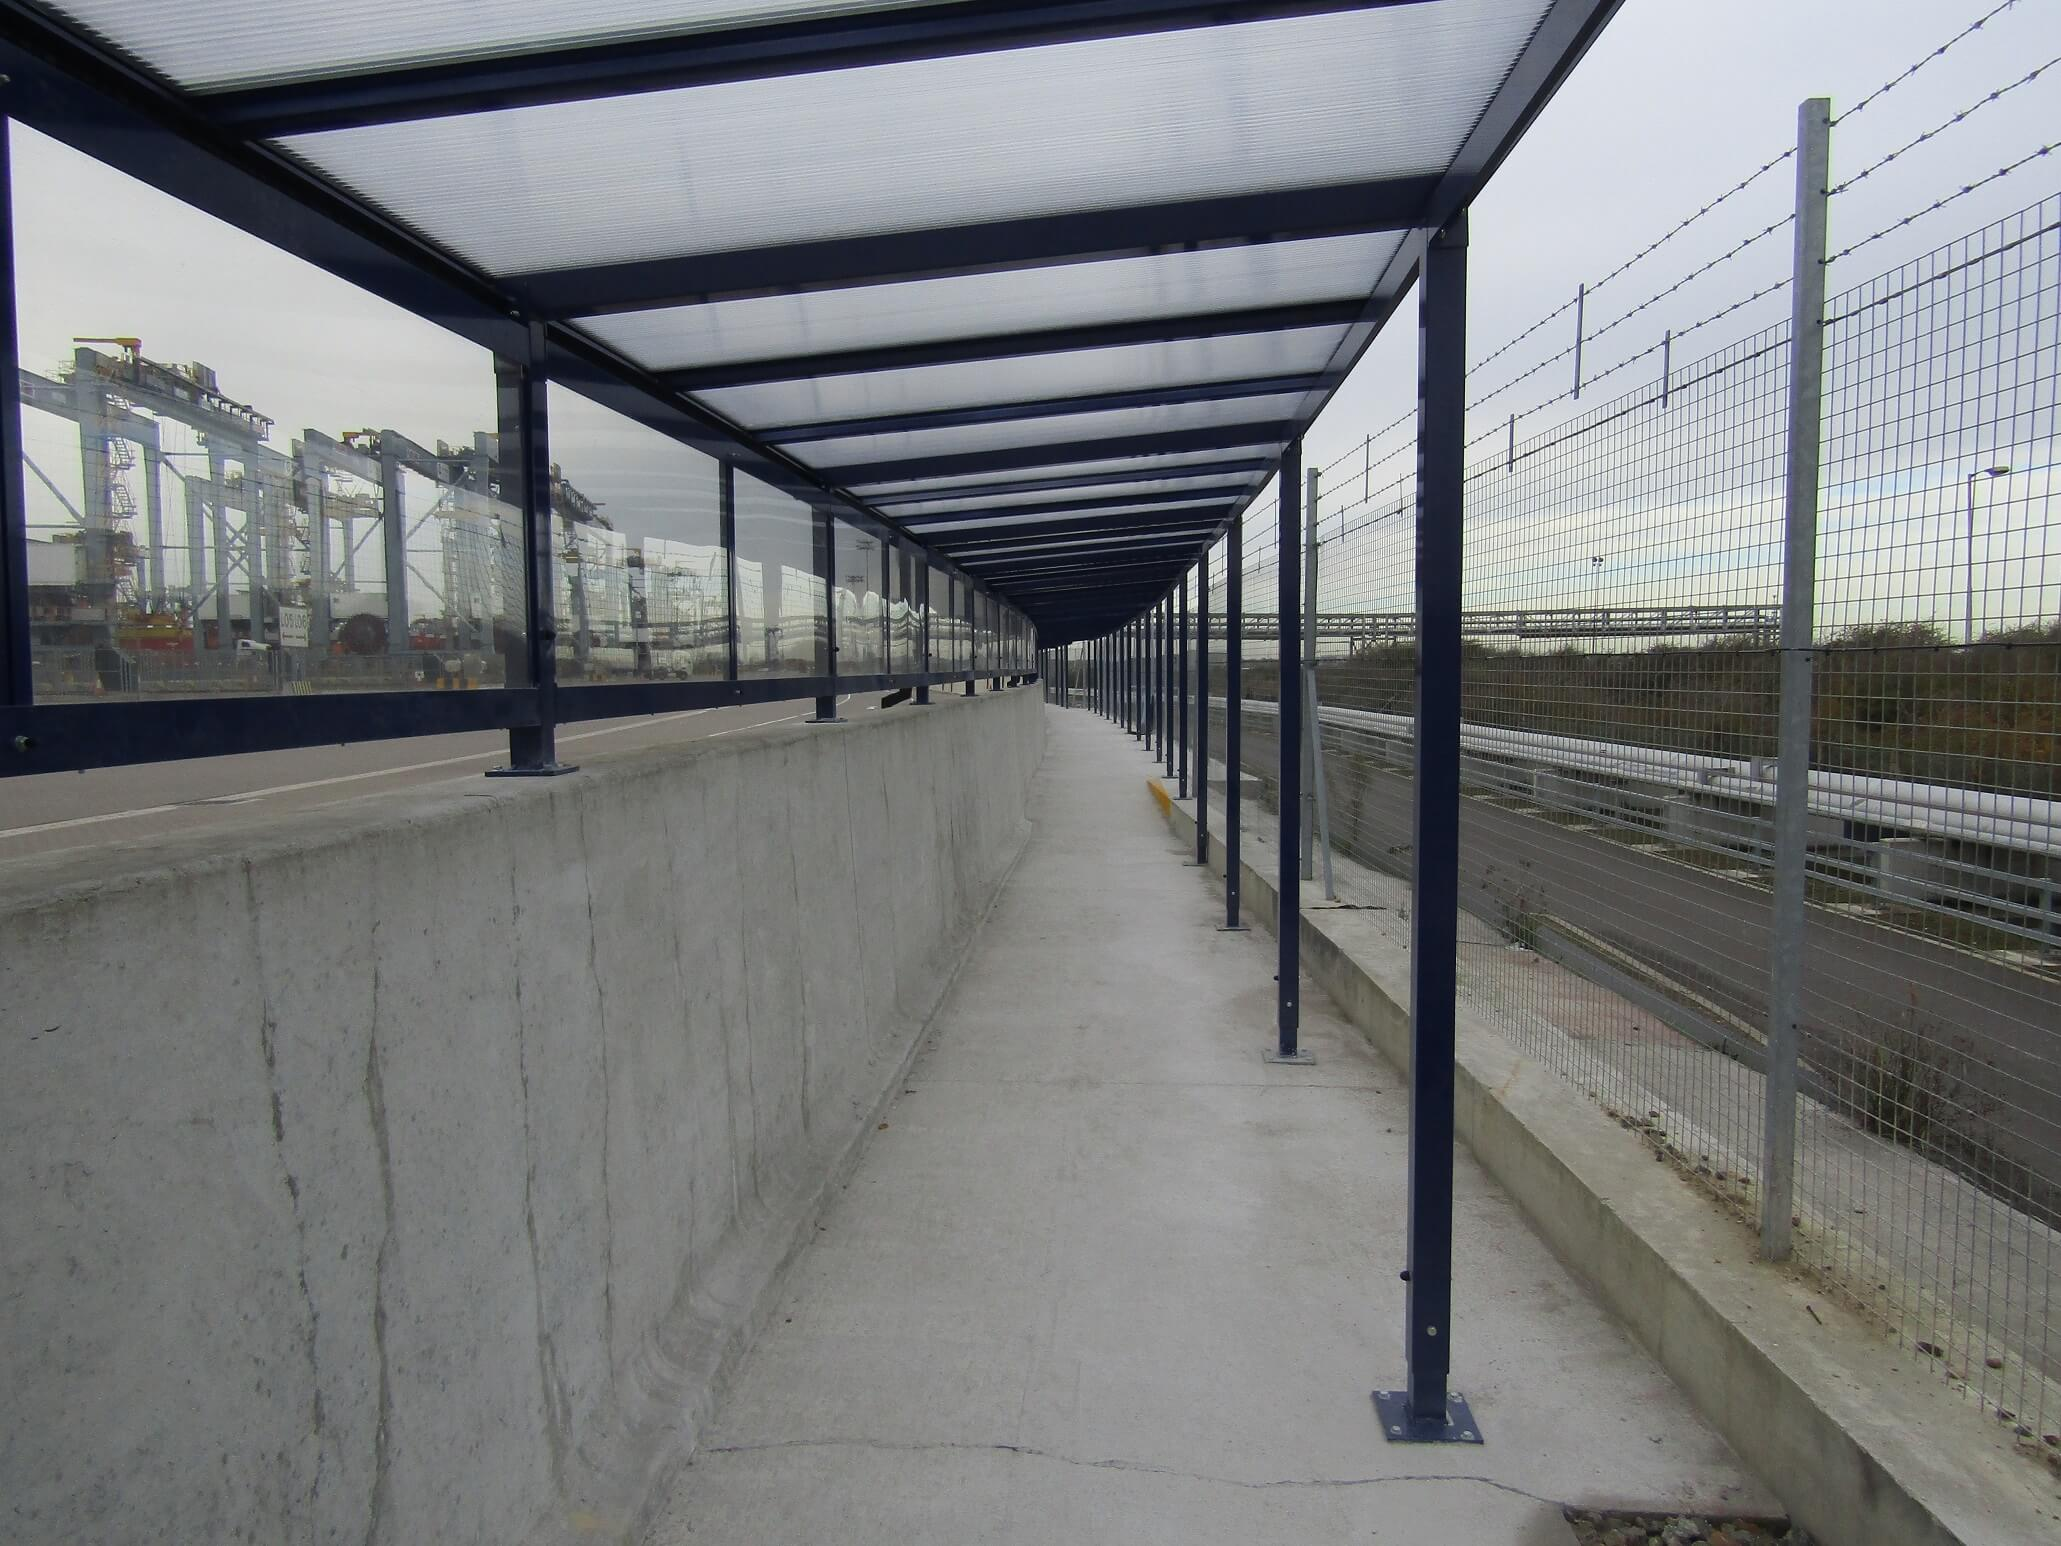 Mono Pitched Covered Walkway Ace Shelters